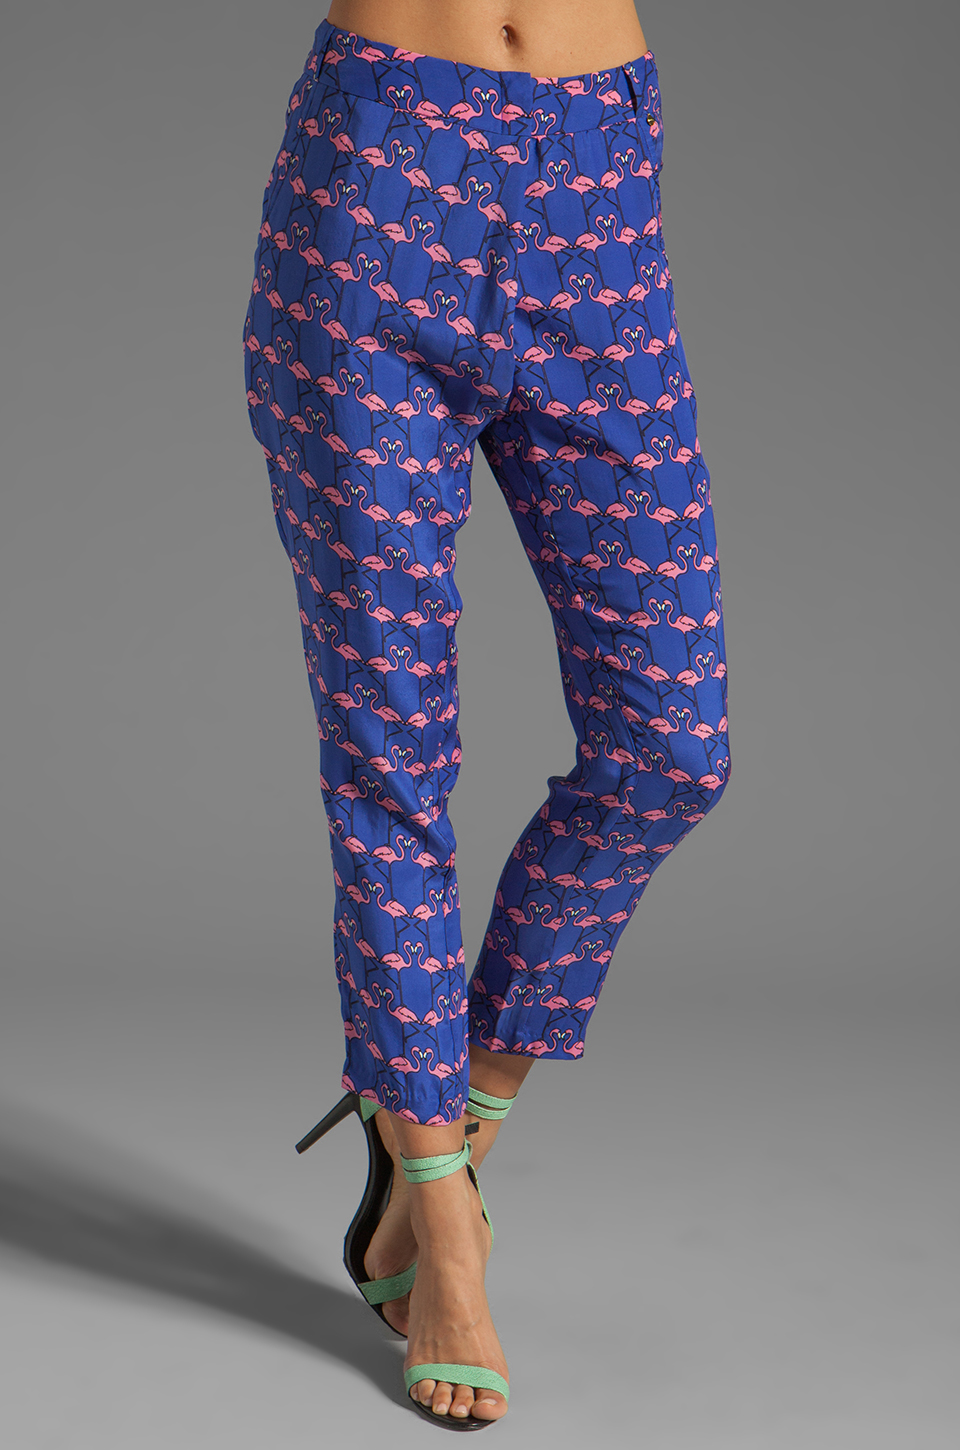 harlyn Peg Leg Trouser in Flamingo Print